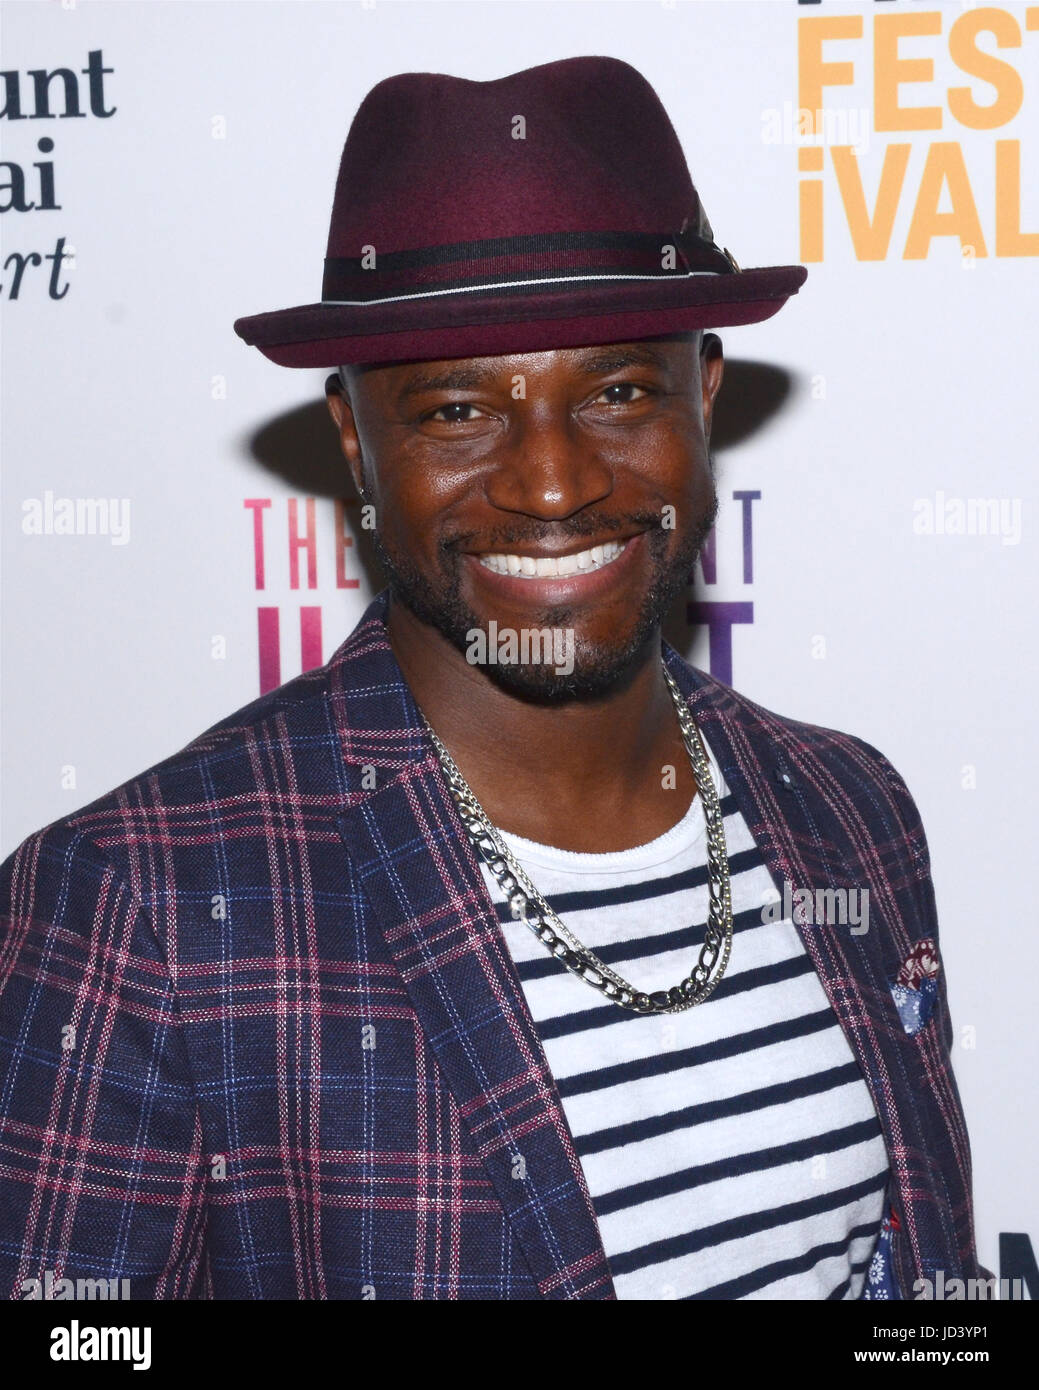 Susan Froemke and Taye Diggs during the LA Film Festival screening for the feature documentary, The Resilient Heart, - Stock Image